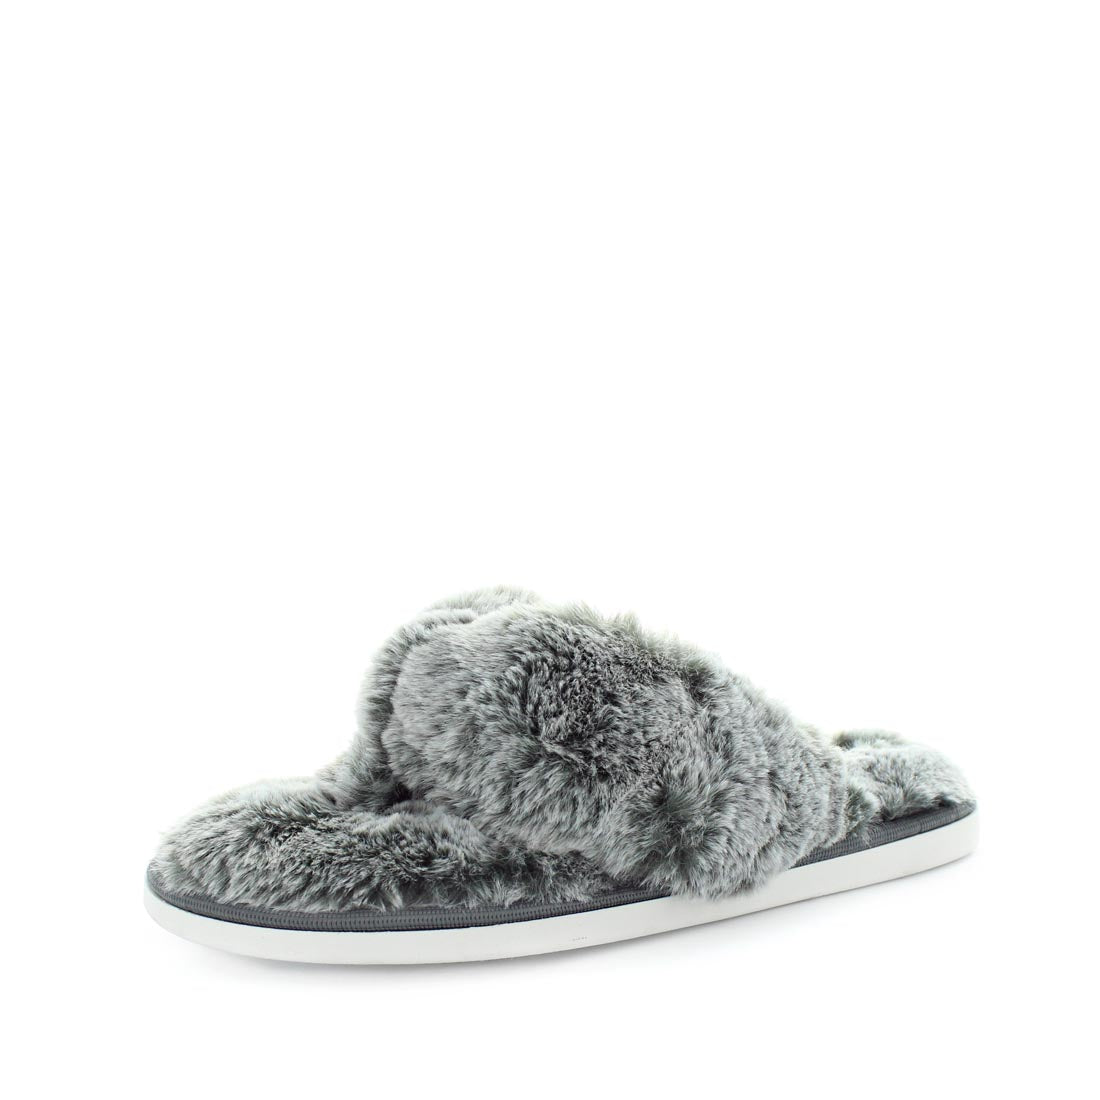 EDORA by PANDA - iShoes - Nwomens slippers - thong slippers - comfort extra padded insole slippers for women - faux fur detailing and extra soft fur for extra cosy feeling